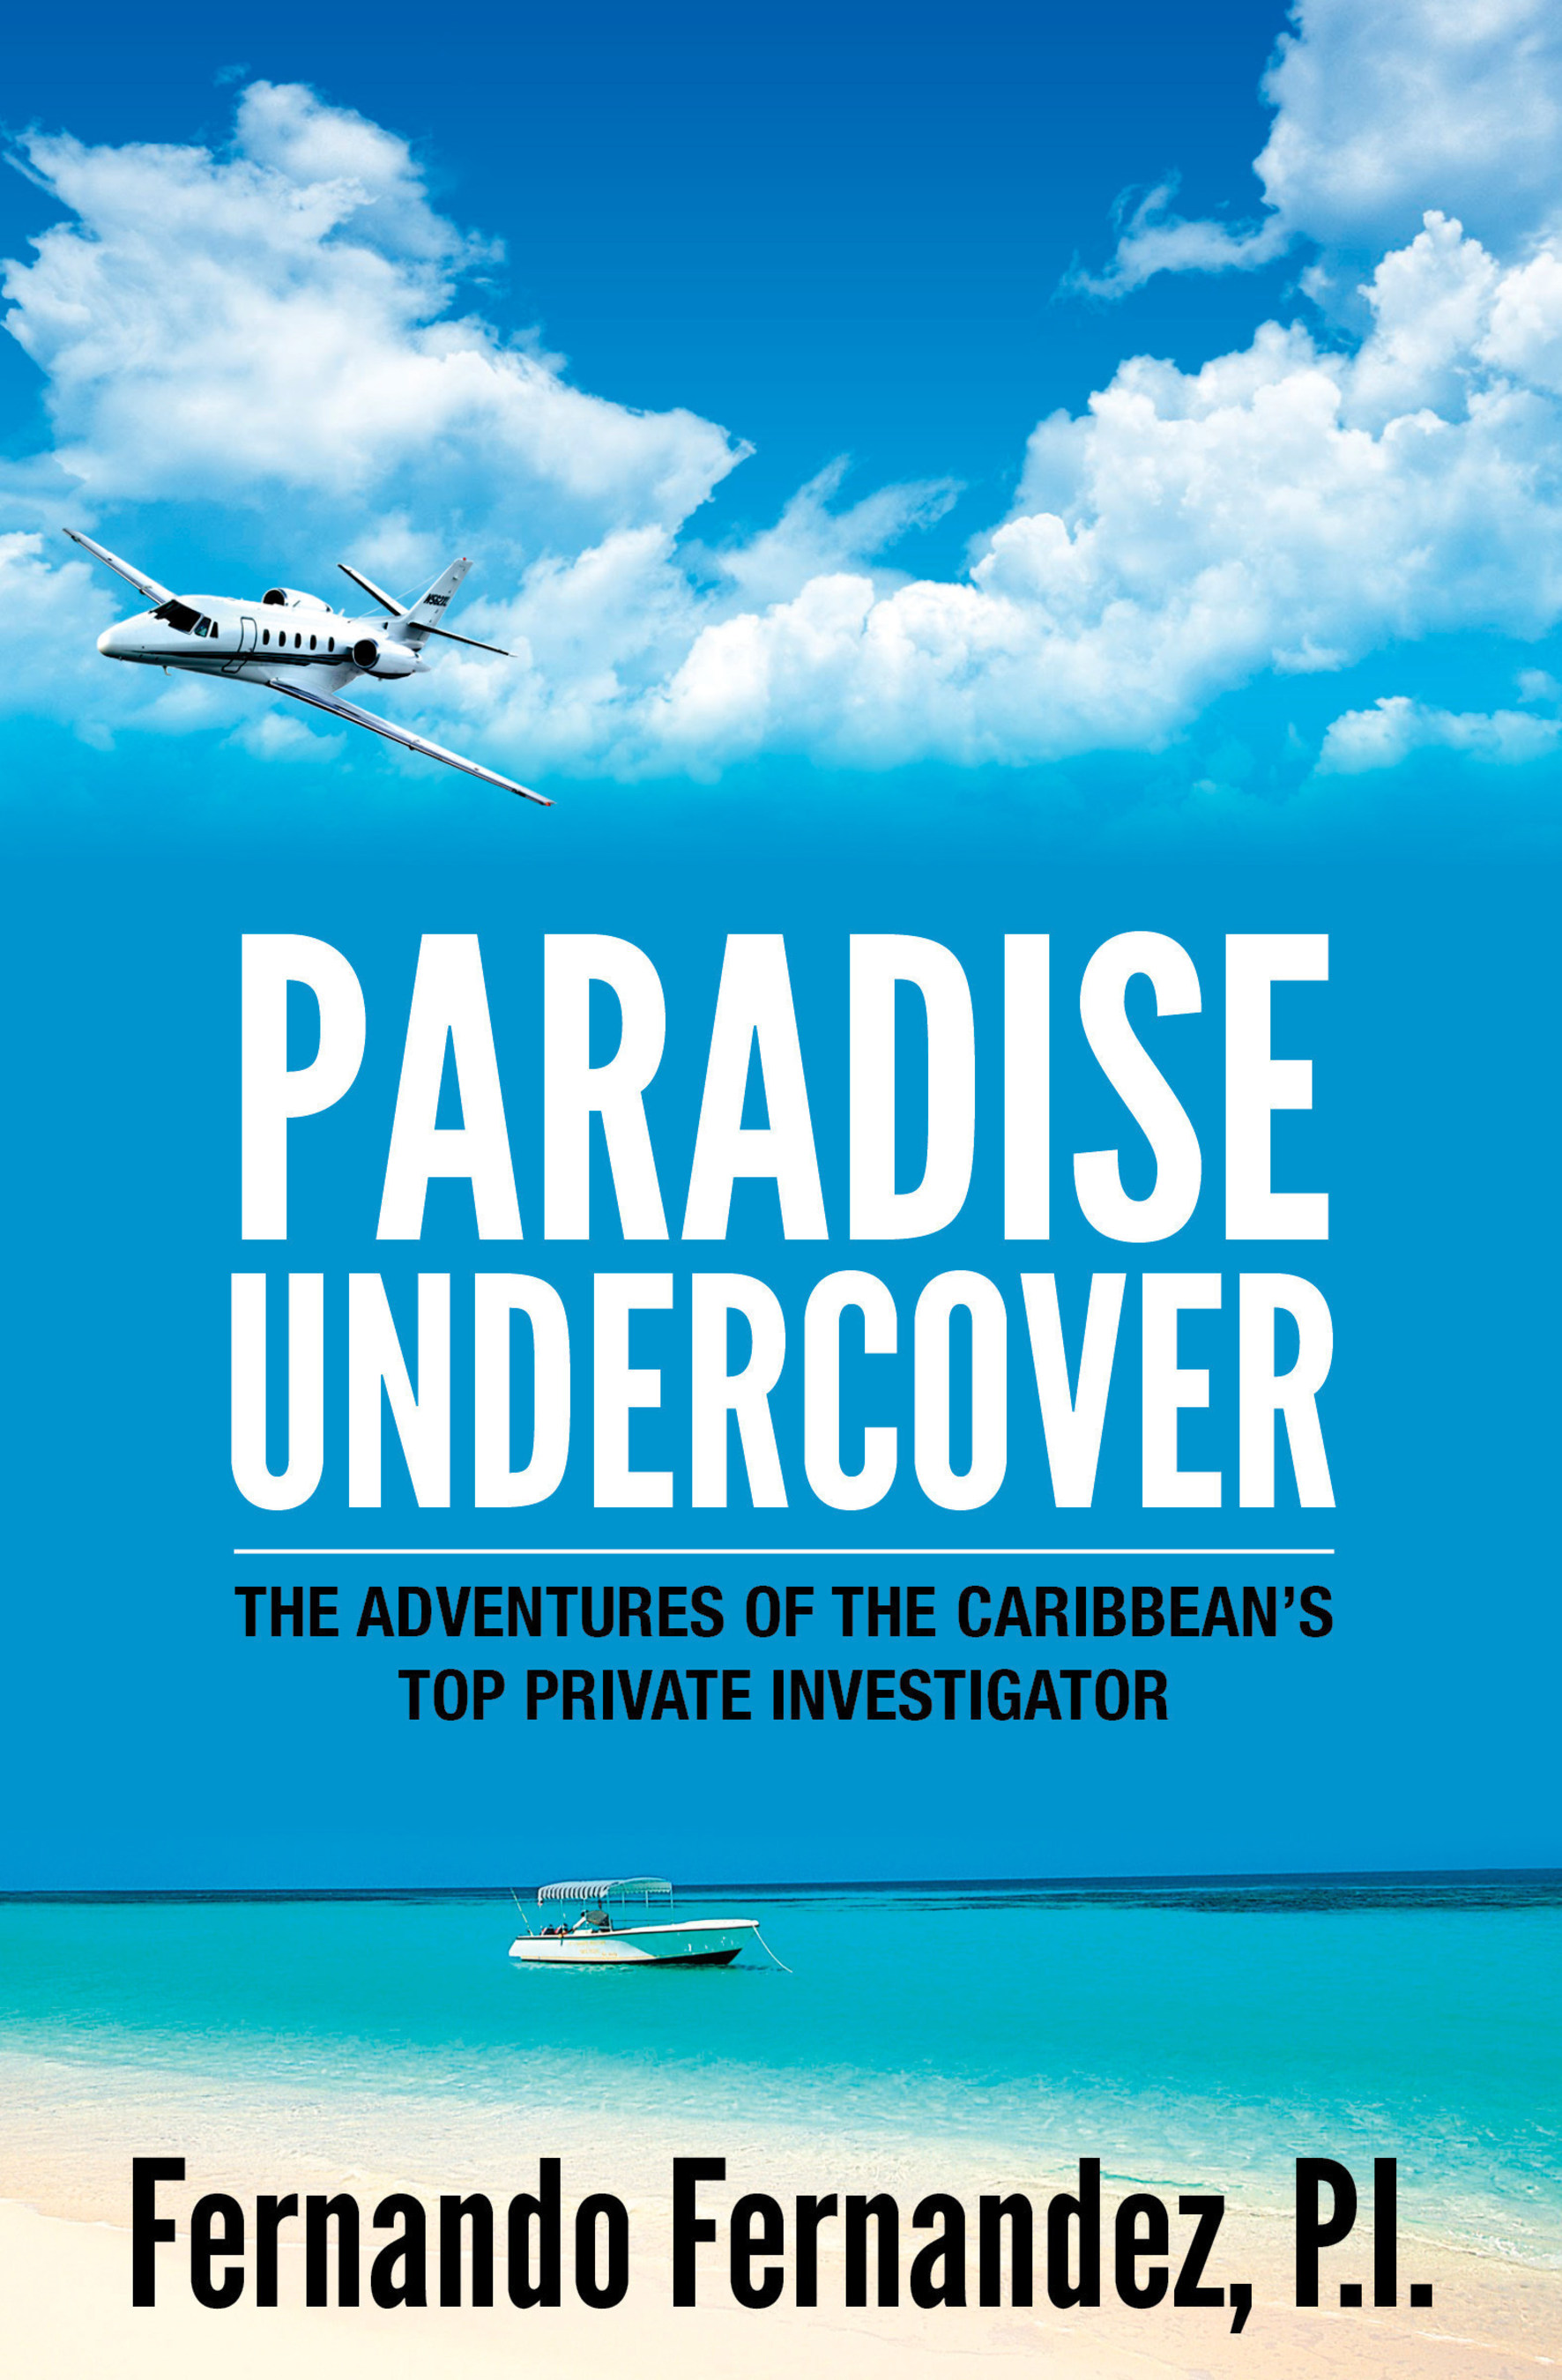 A NEW REAL-LIFE CHARACTER AMONG PRIVATE INVESTIGATORS IN THE CARIBBEAN